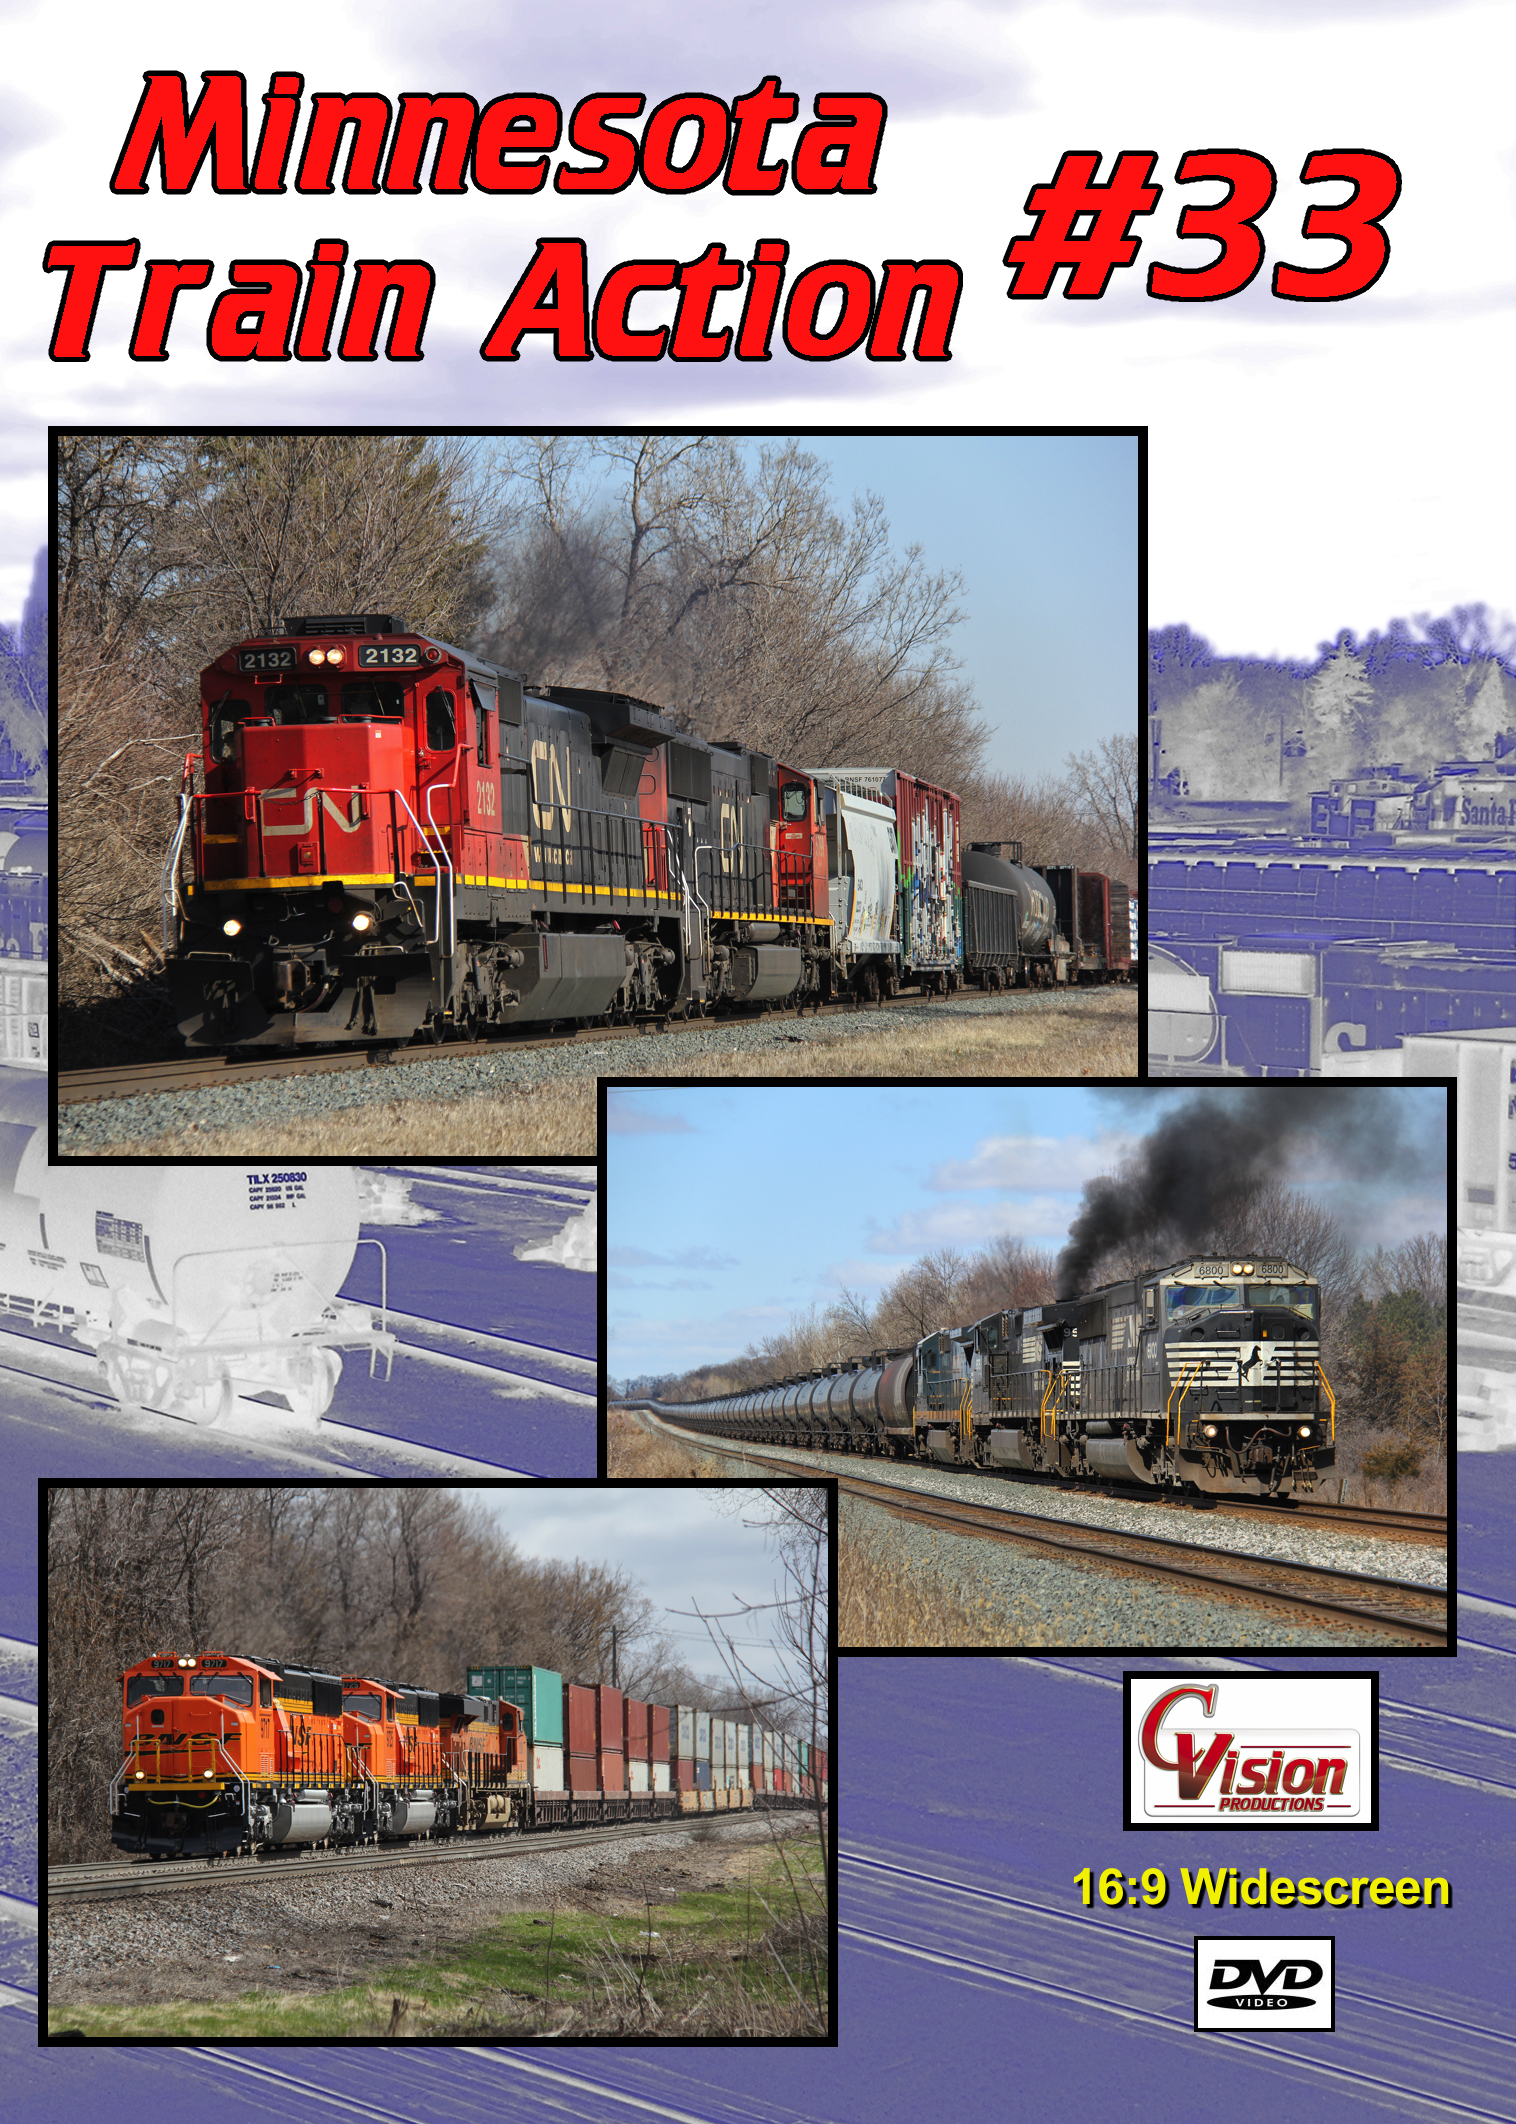 Minnesota Train Action Number 33 DVD C Vision Productions MTA33DVD